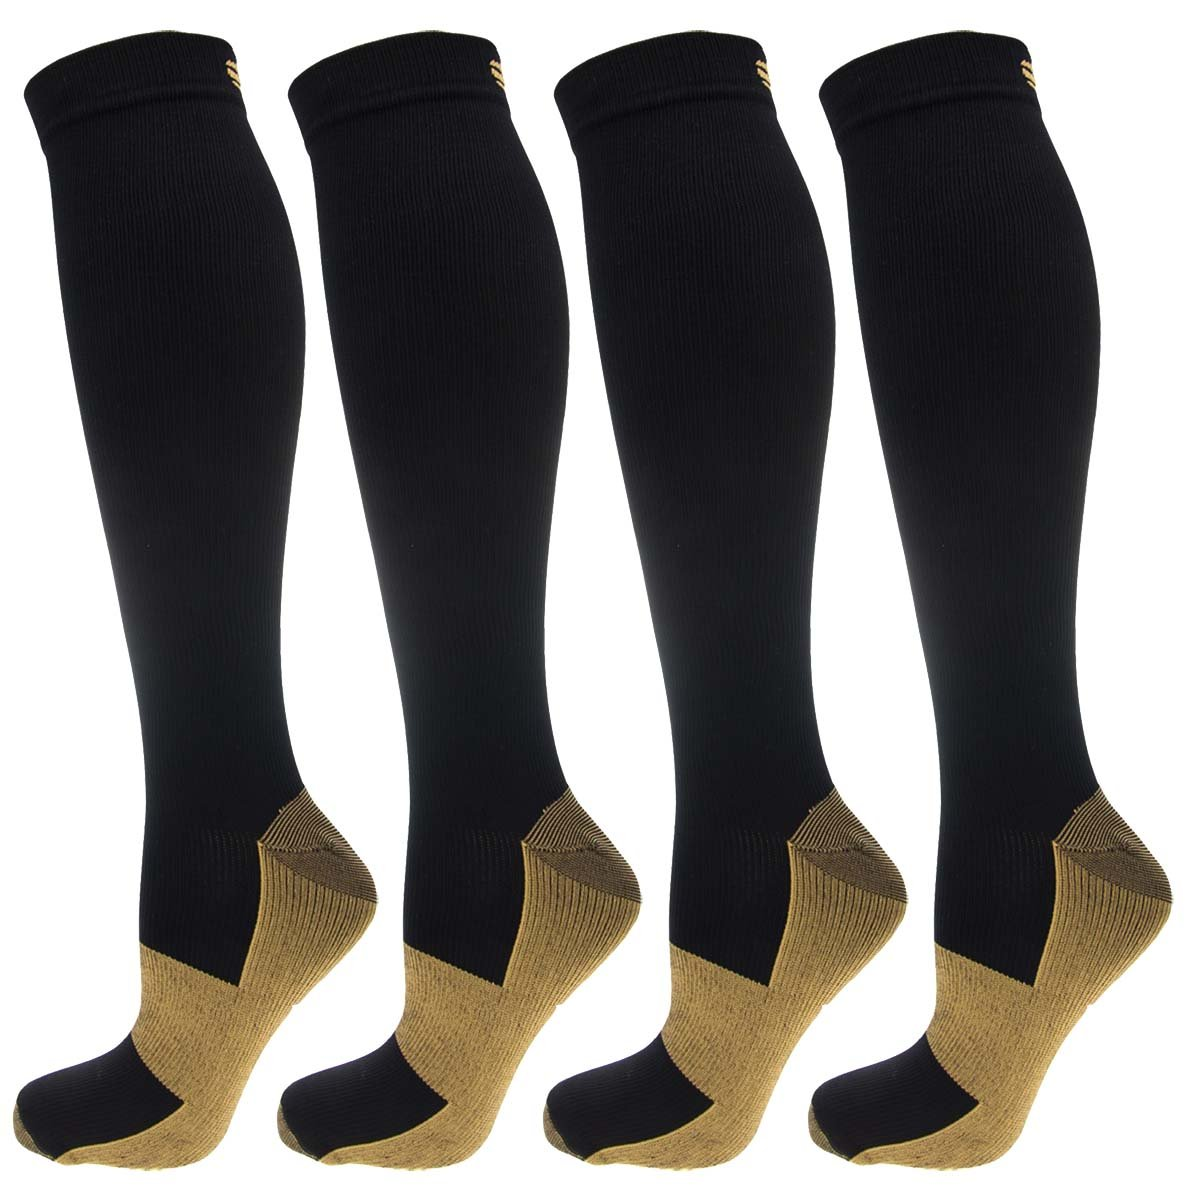 4 Pairs of Ontel Copper-Infused Anti-Fatigue Compression Knee-High Health Socks, For Men & Women Small Medium